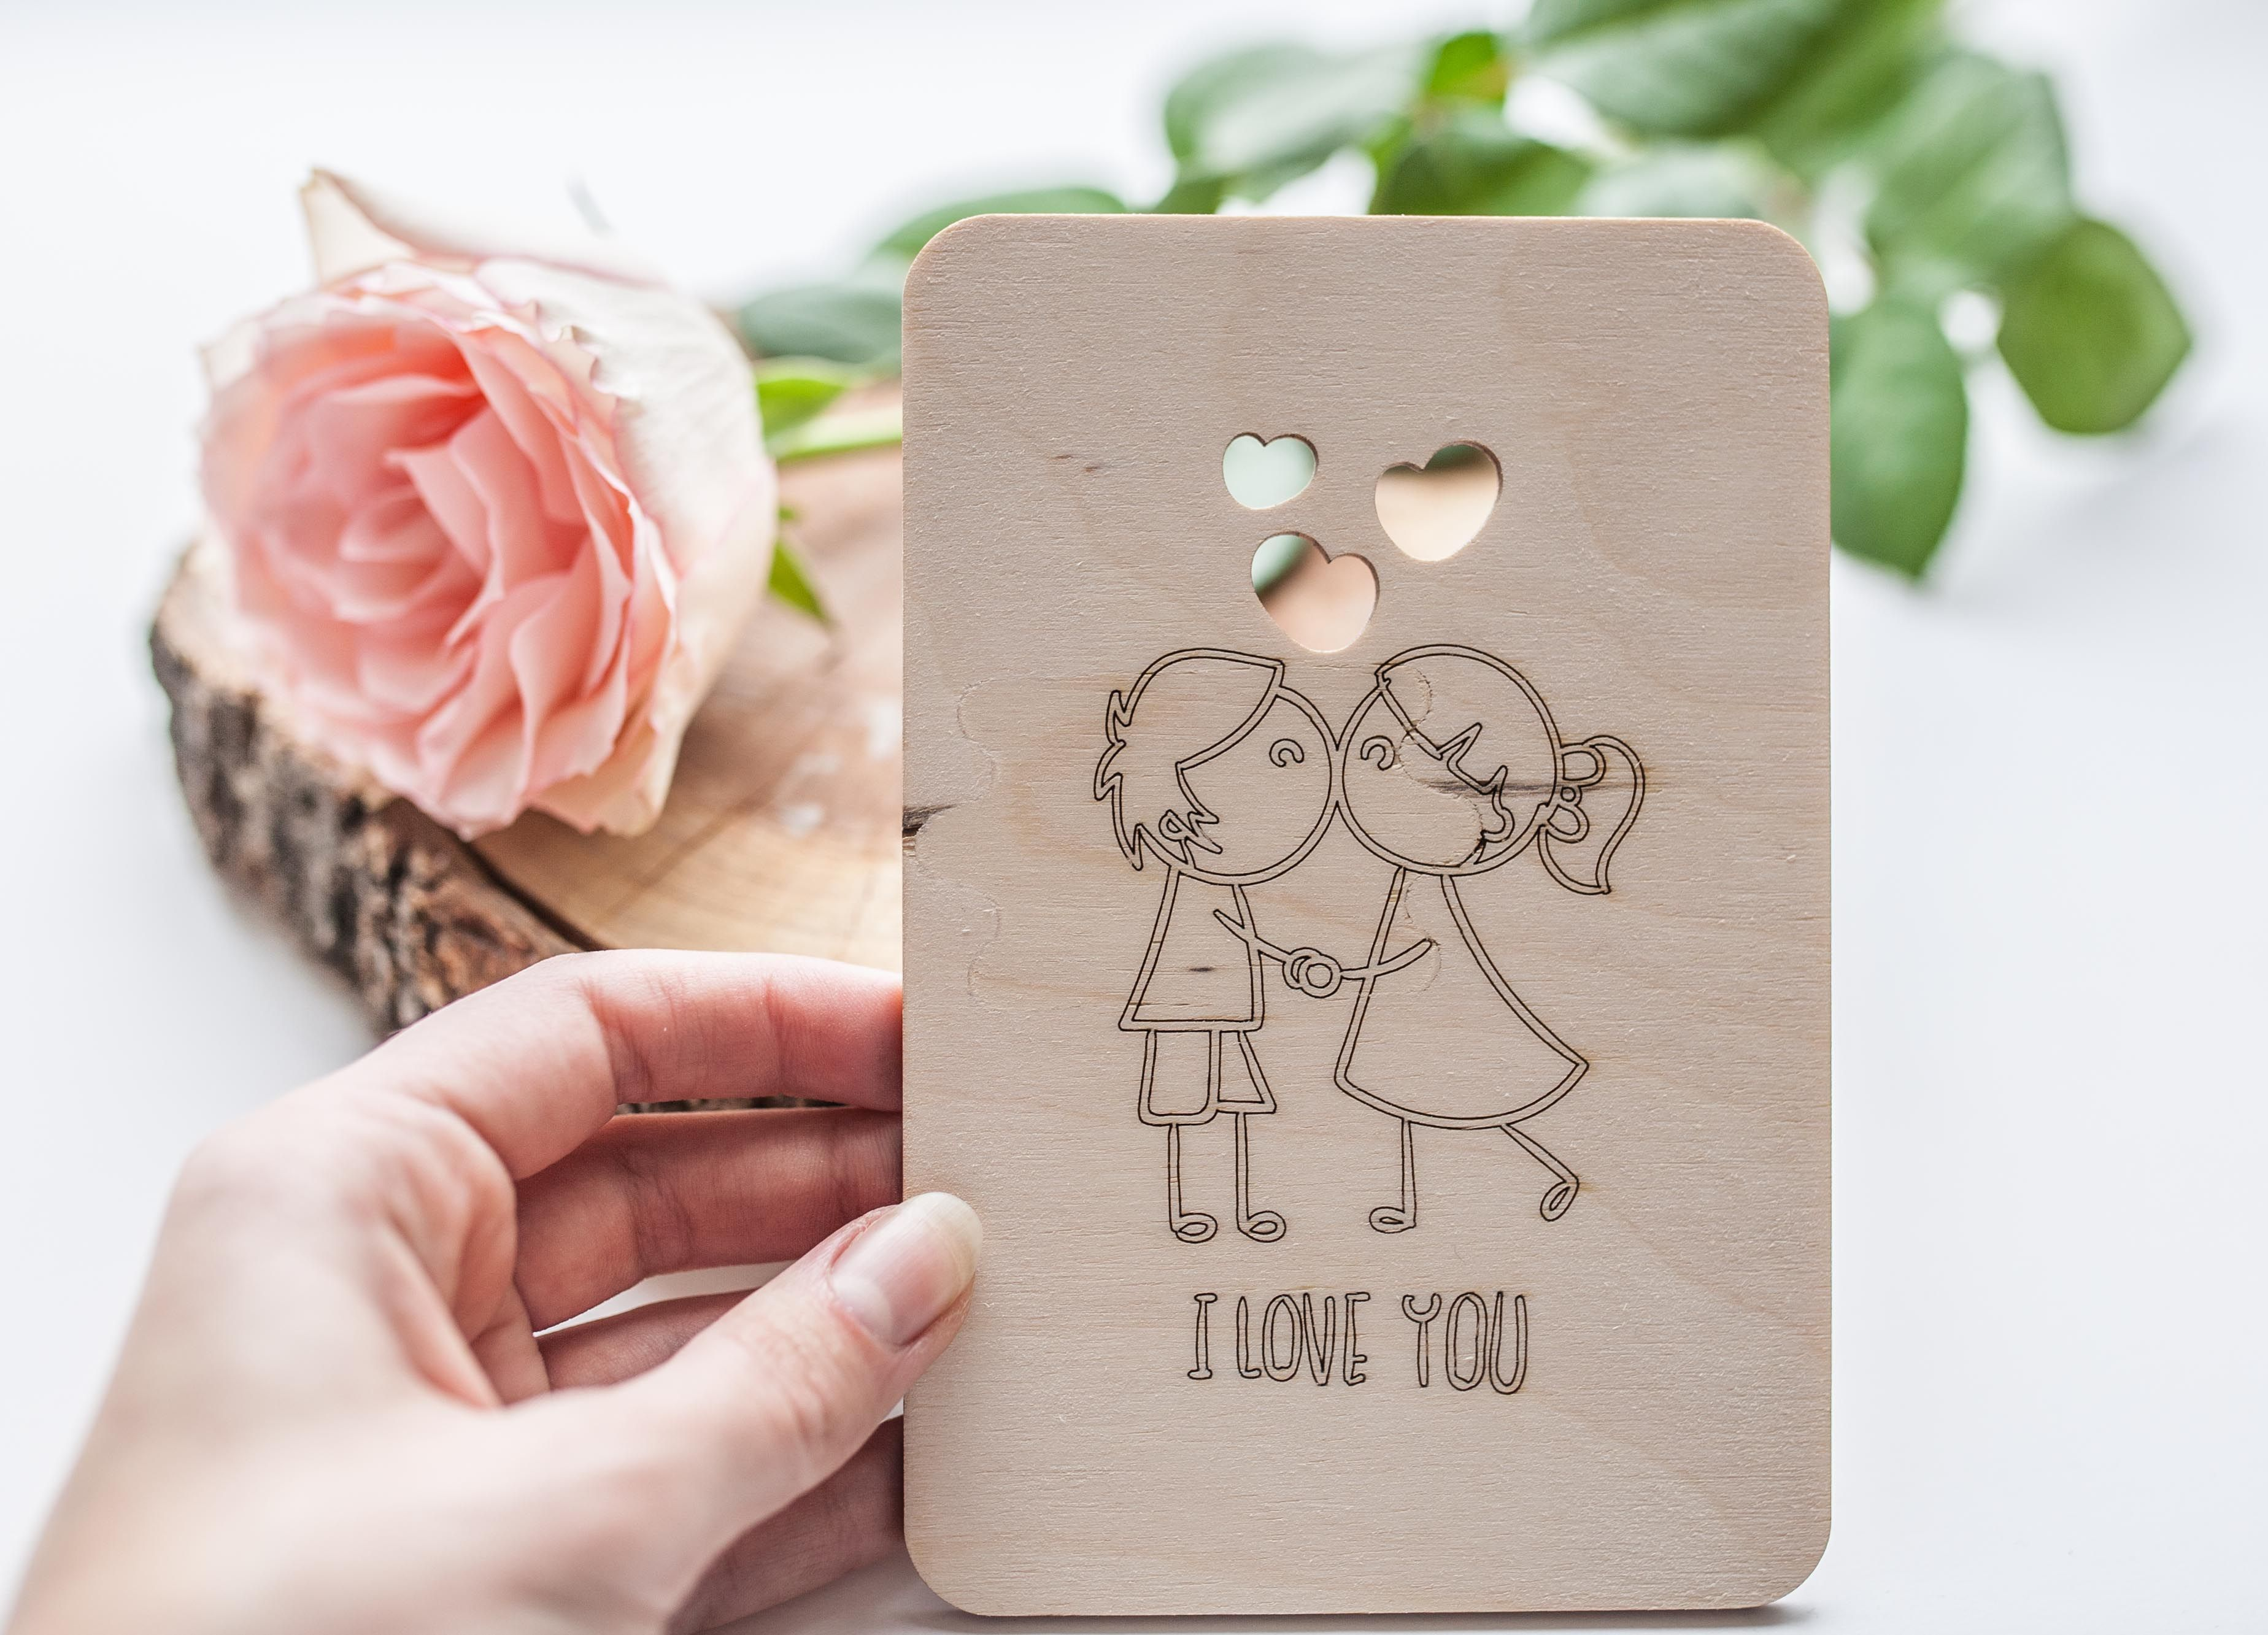 Valentine card laser cut etched on wood card wood card st valentines valentine card laser cut etched on wood card wood card st valentines anniversary card love cards love you card husband card wood cut card wood greeting card m4hsunfo Images